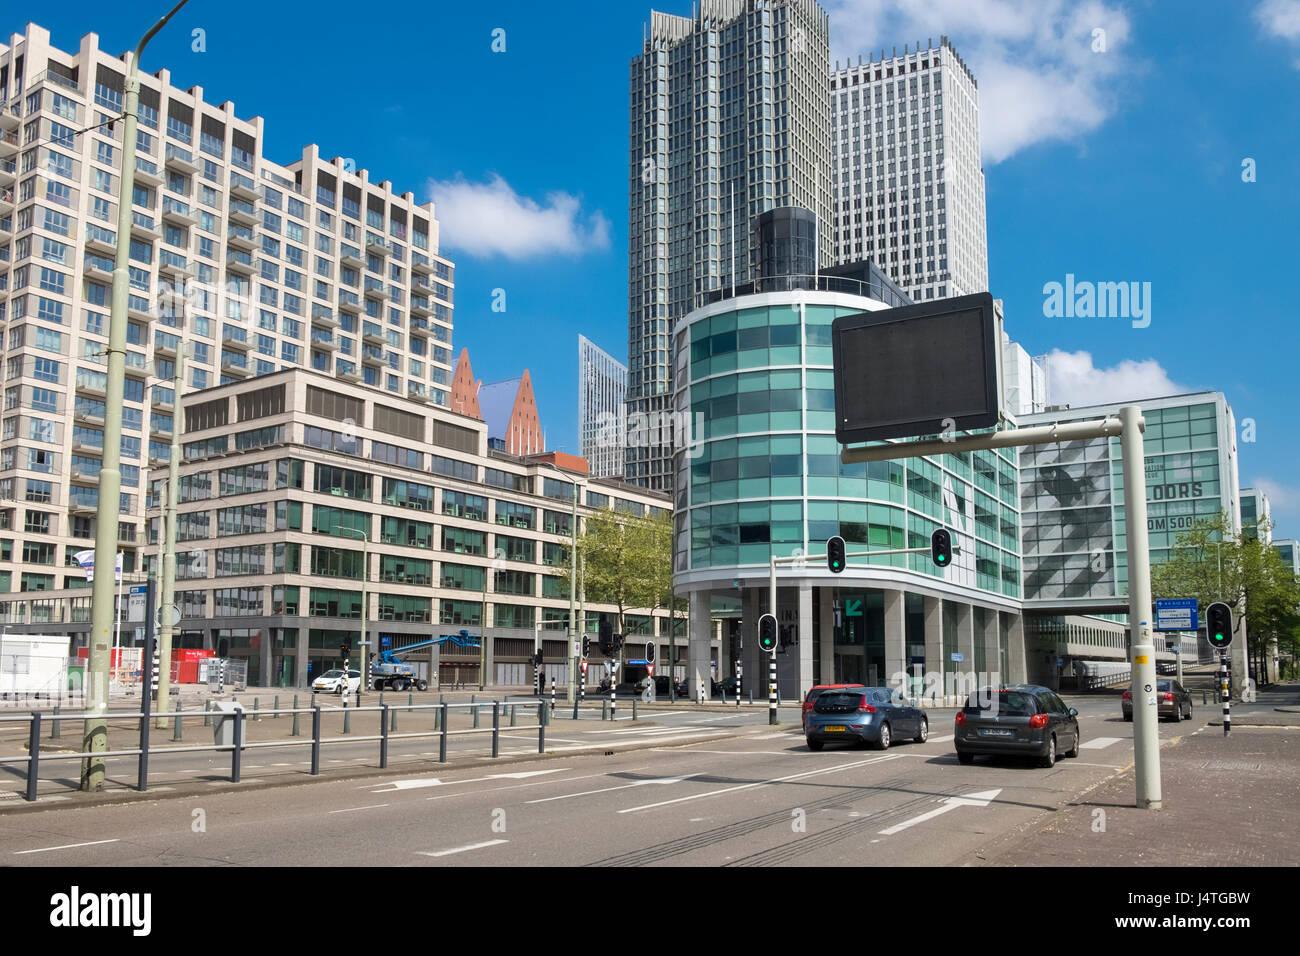 Examples Of Modern Architecture Design Seen In Central Den Haag The